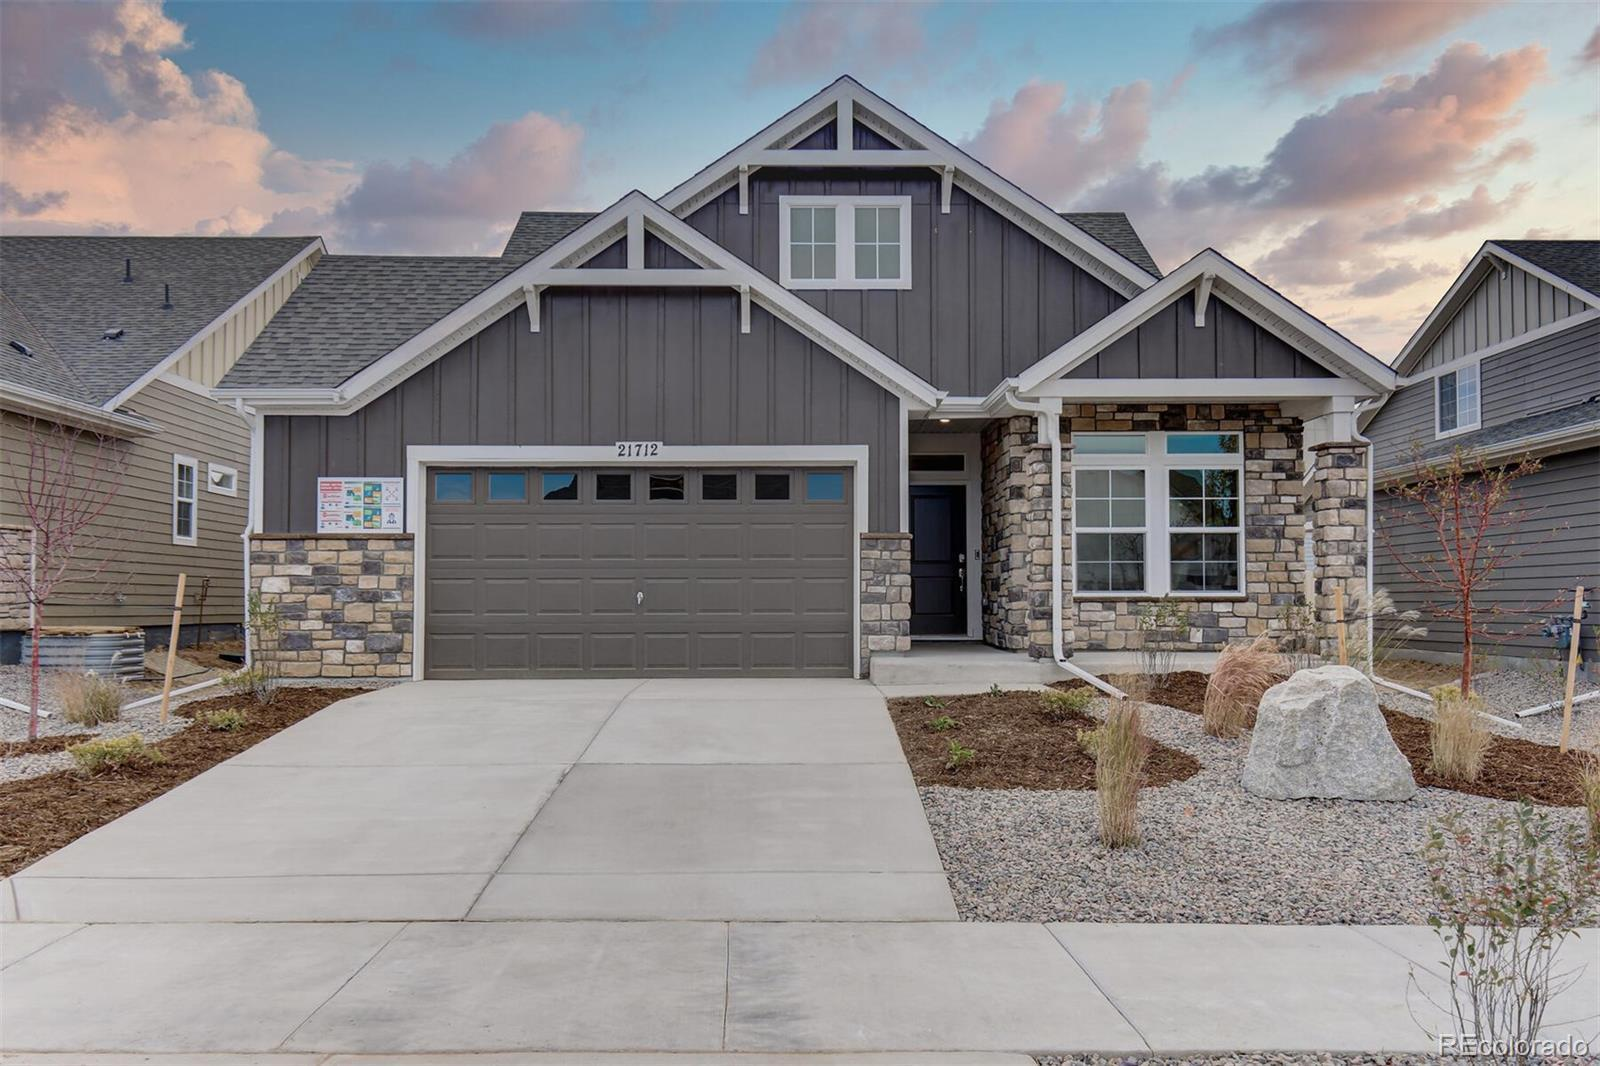 21712 E 50th Drive, Aurora, CO 80019 - #: 7340423